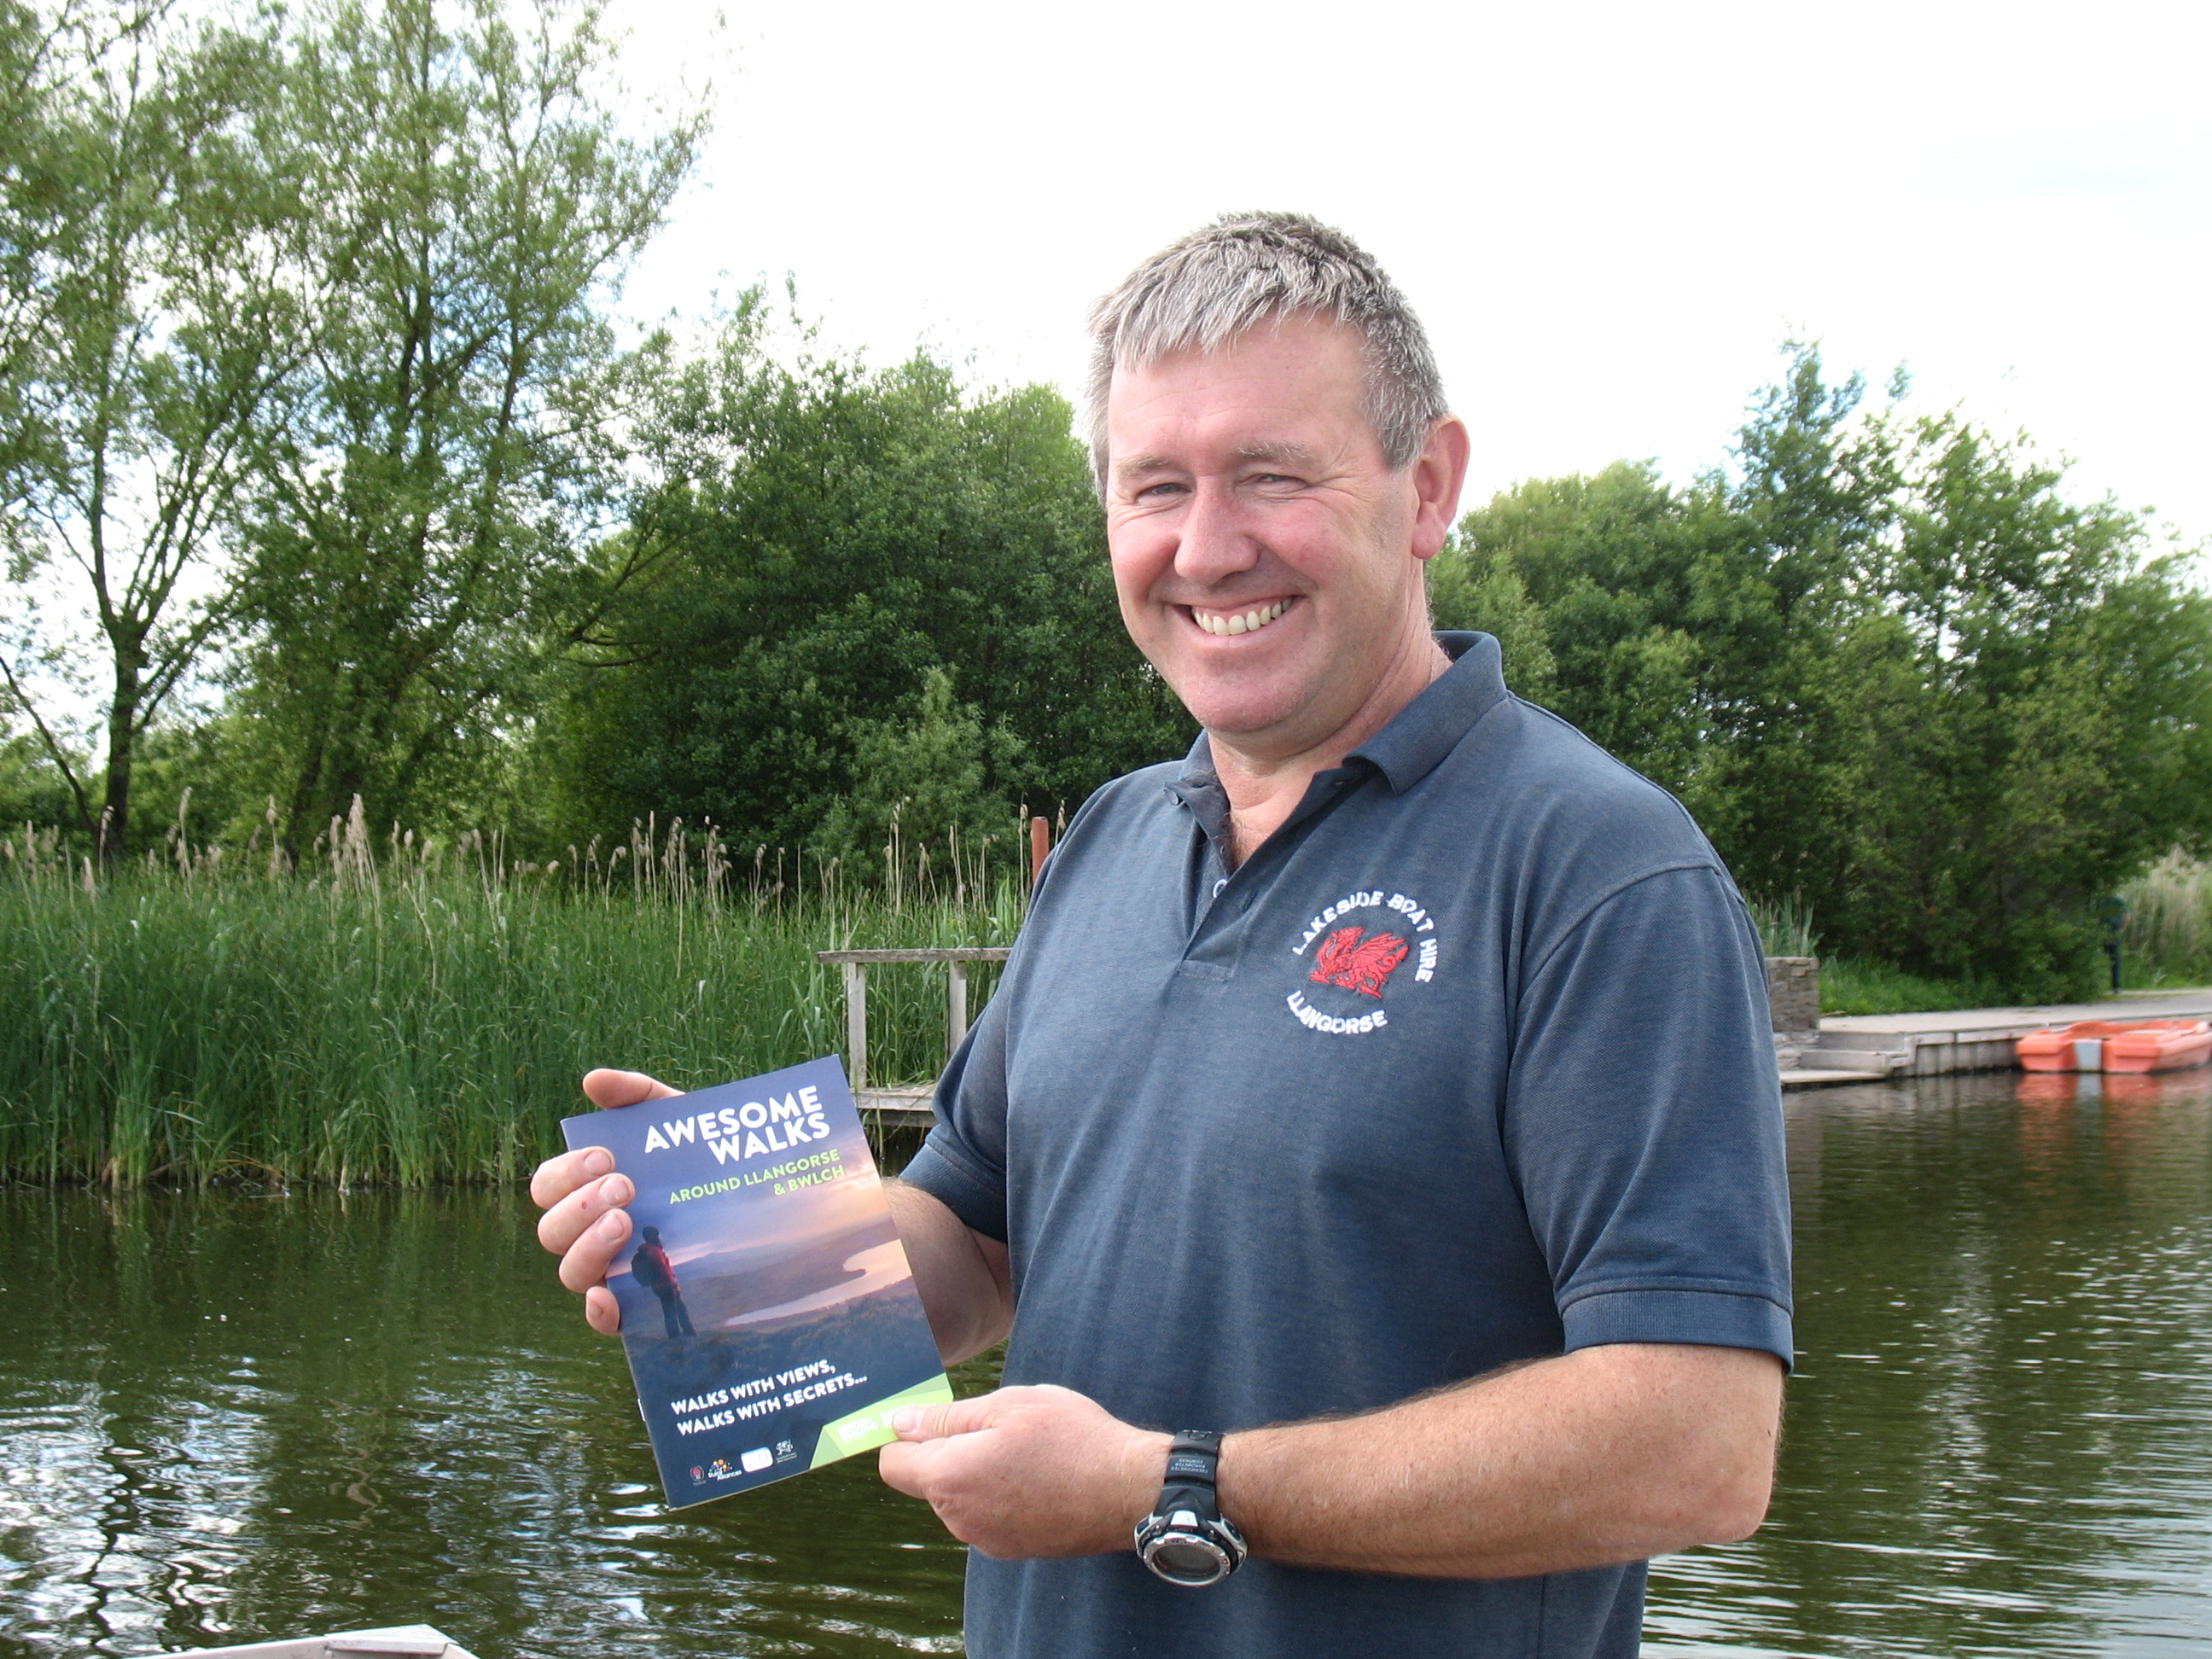 Garnet Davies from Lakeside Boat Hire in Llangors pictured with the new booklet